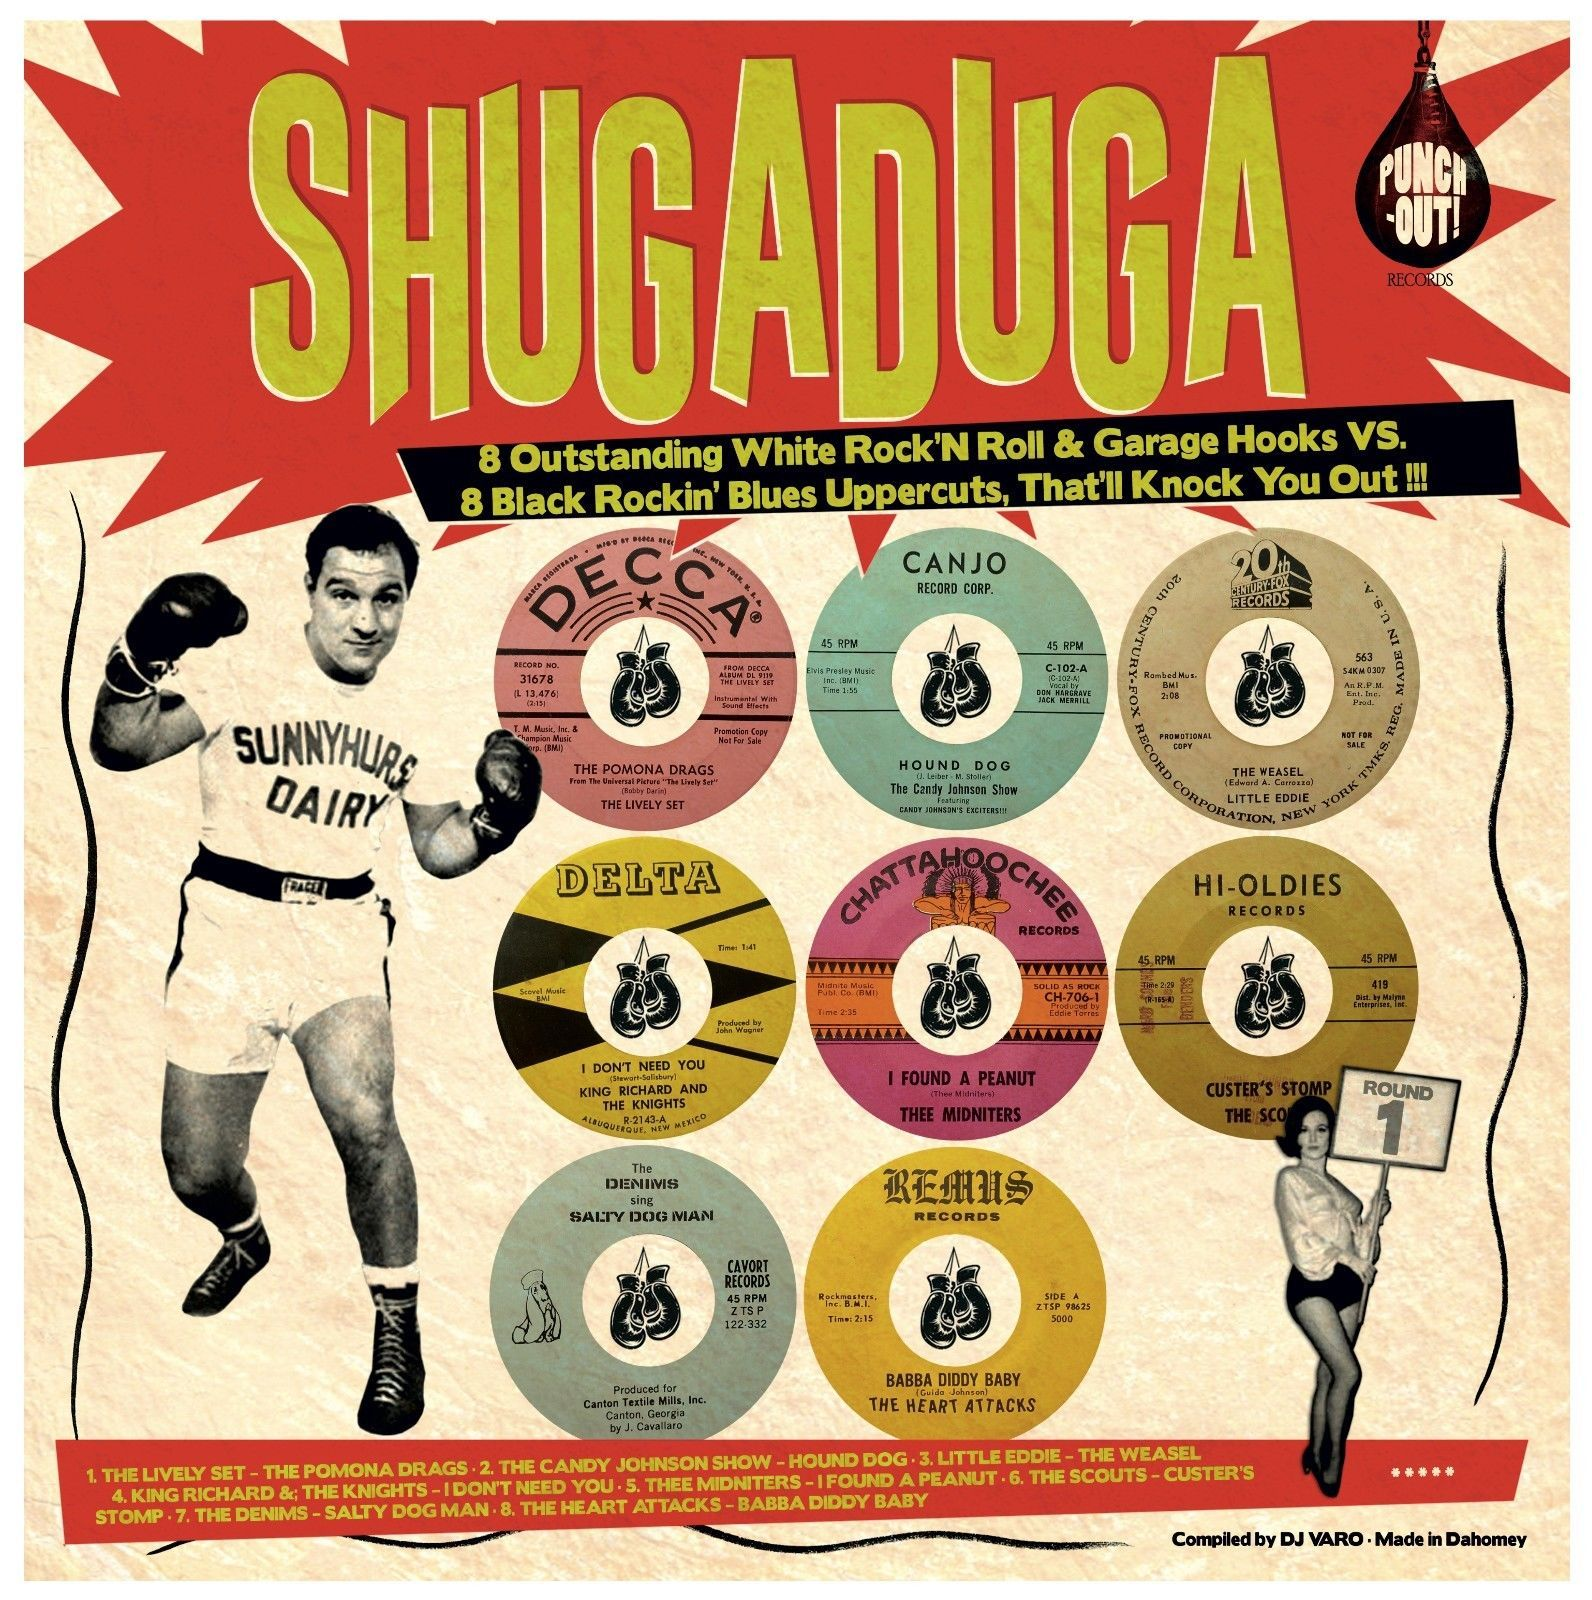 Shugaduga -  Black Rockin' Blues Uppercuts...